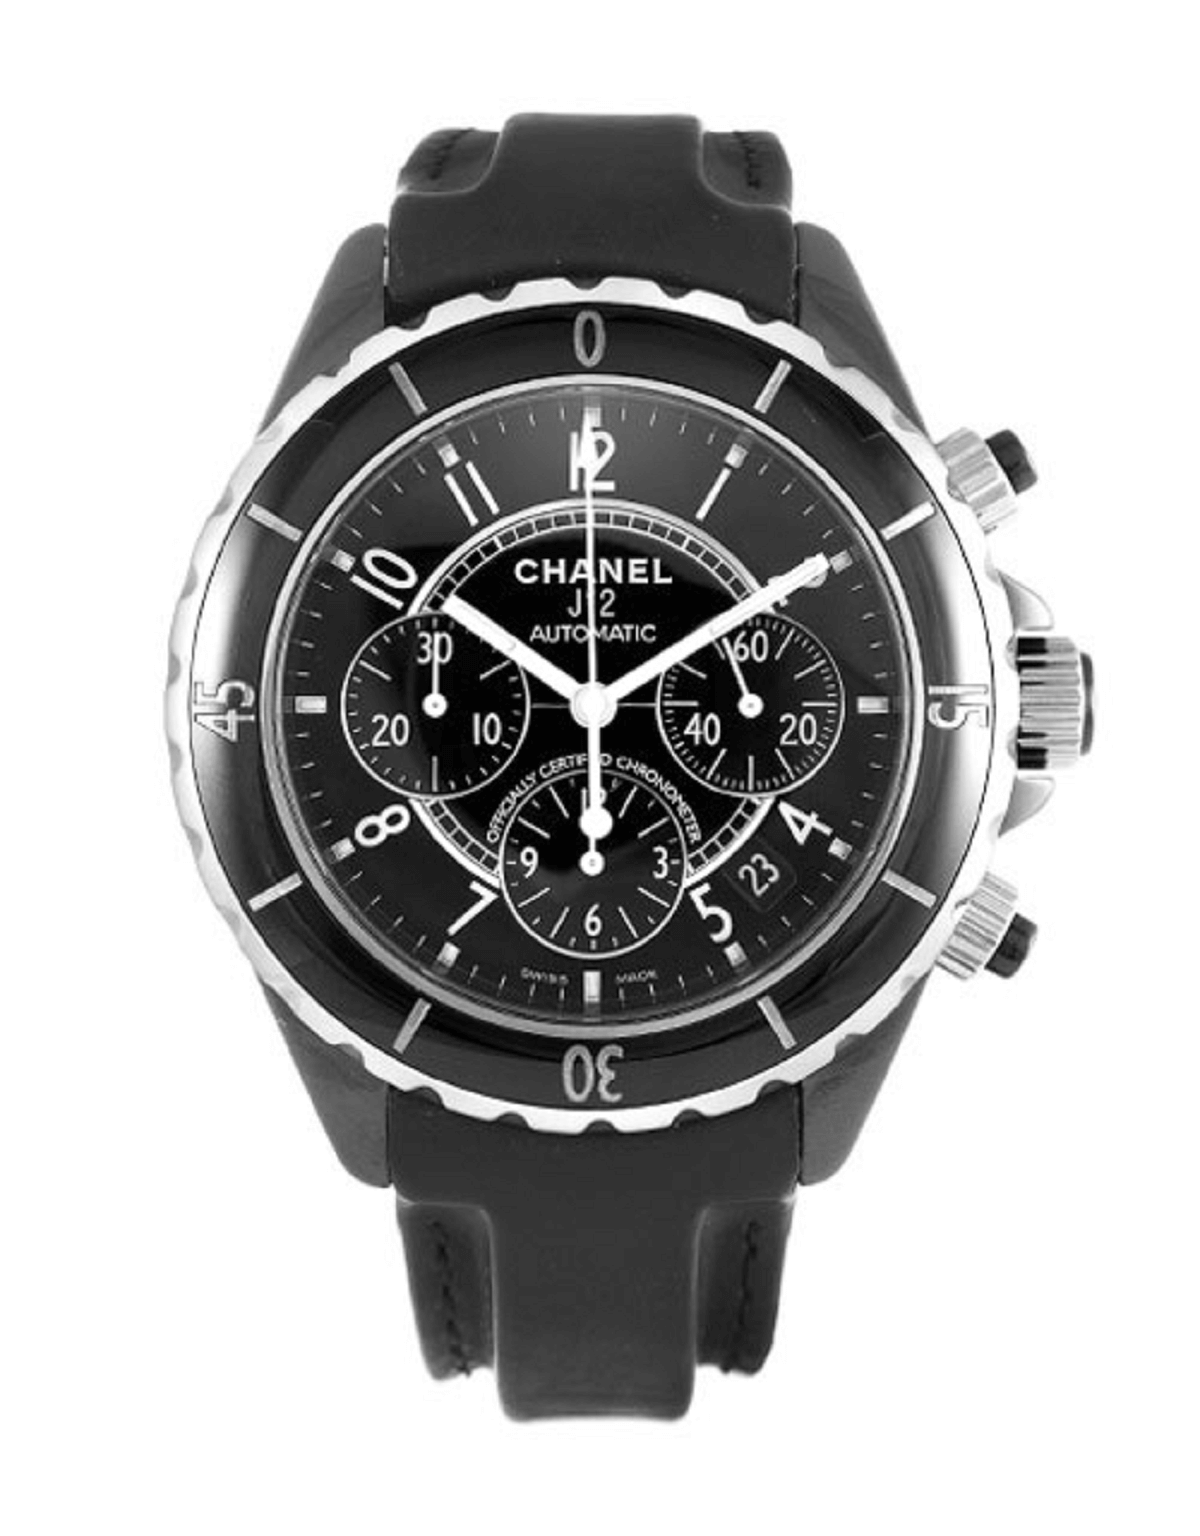 CHANEL J12 Chronograph レザーベルト H0938